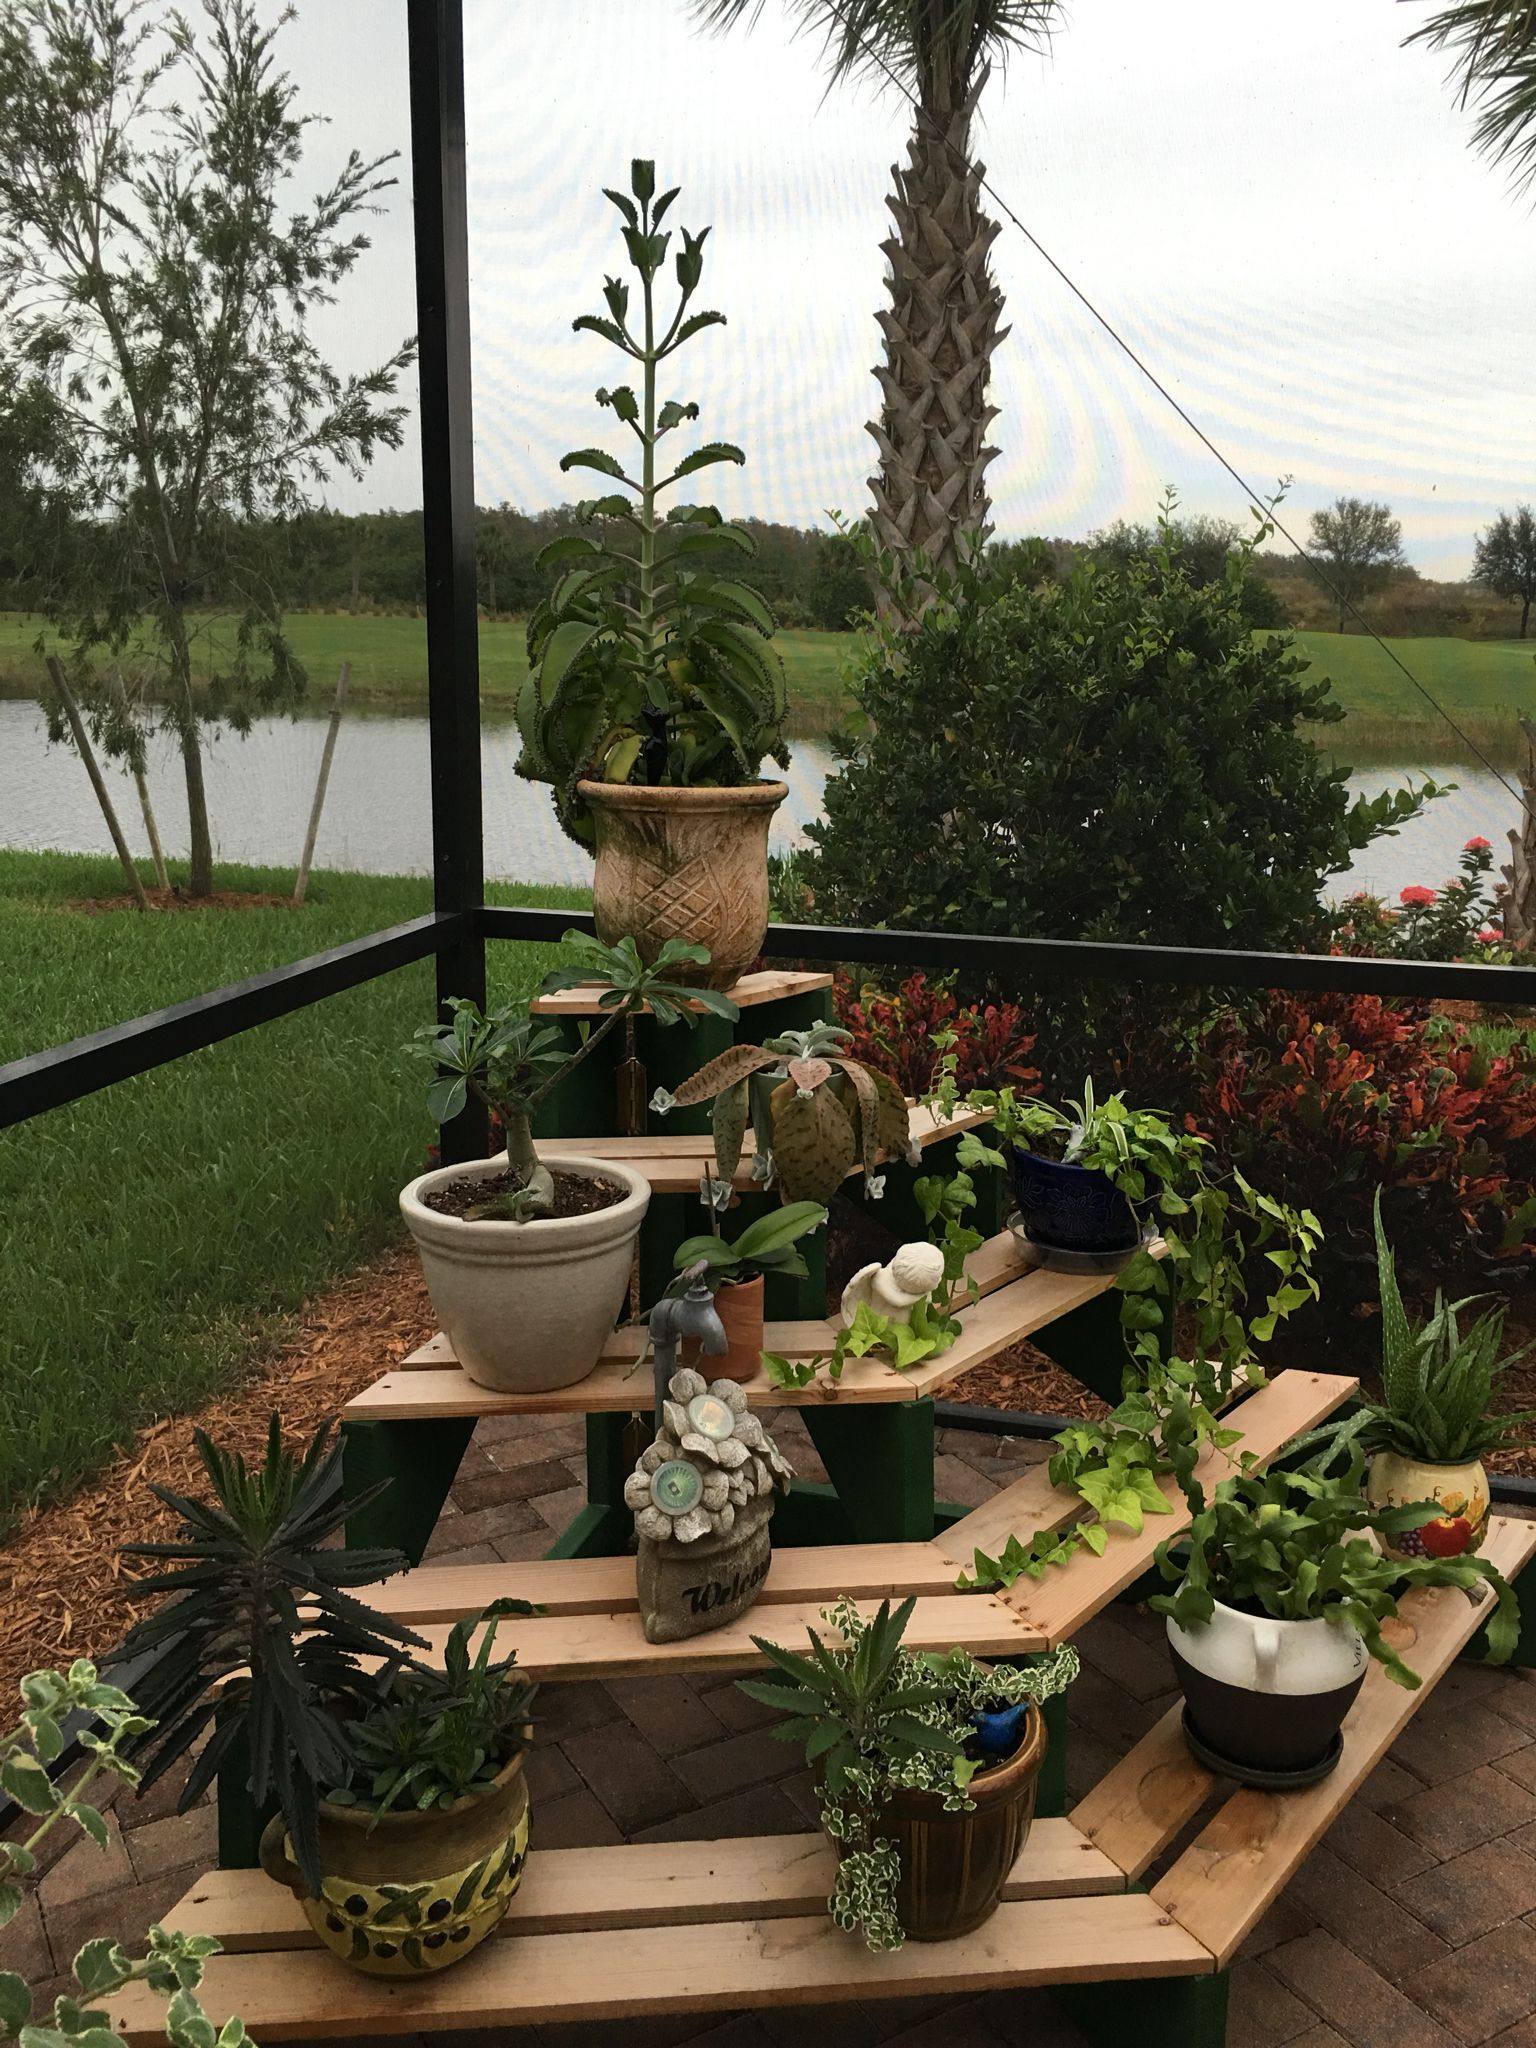 DIY 4 tiered wooden outdoor plant stand display. Plant